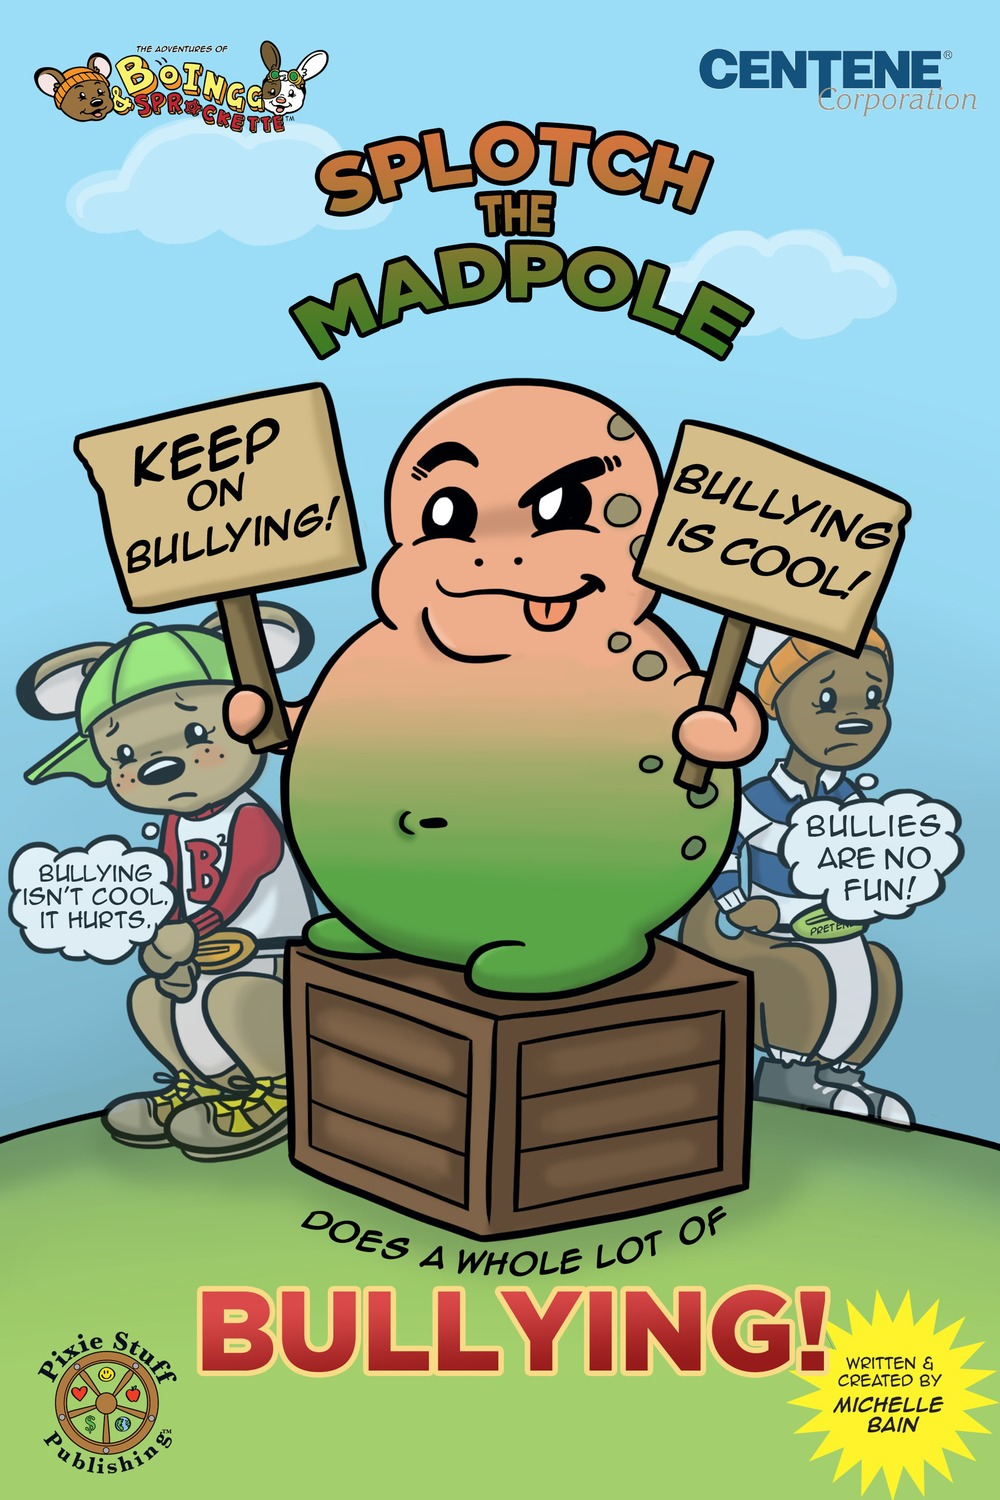 The Adventures of BoIngg & Sprockette: SPLOTCH THE MADPOLE DOES A WHOLE LOT OF BULLYING!